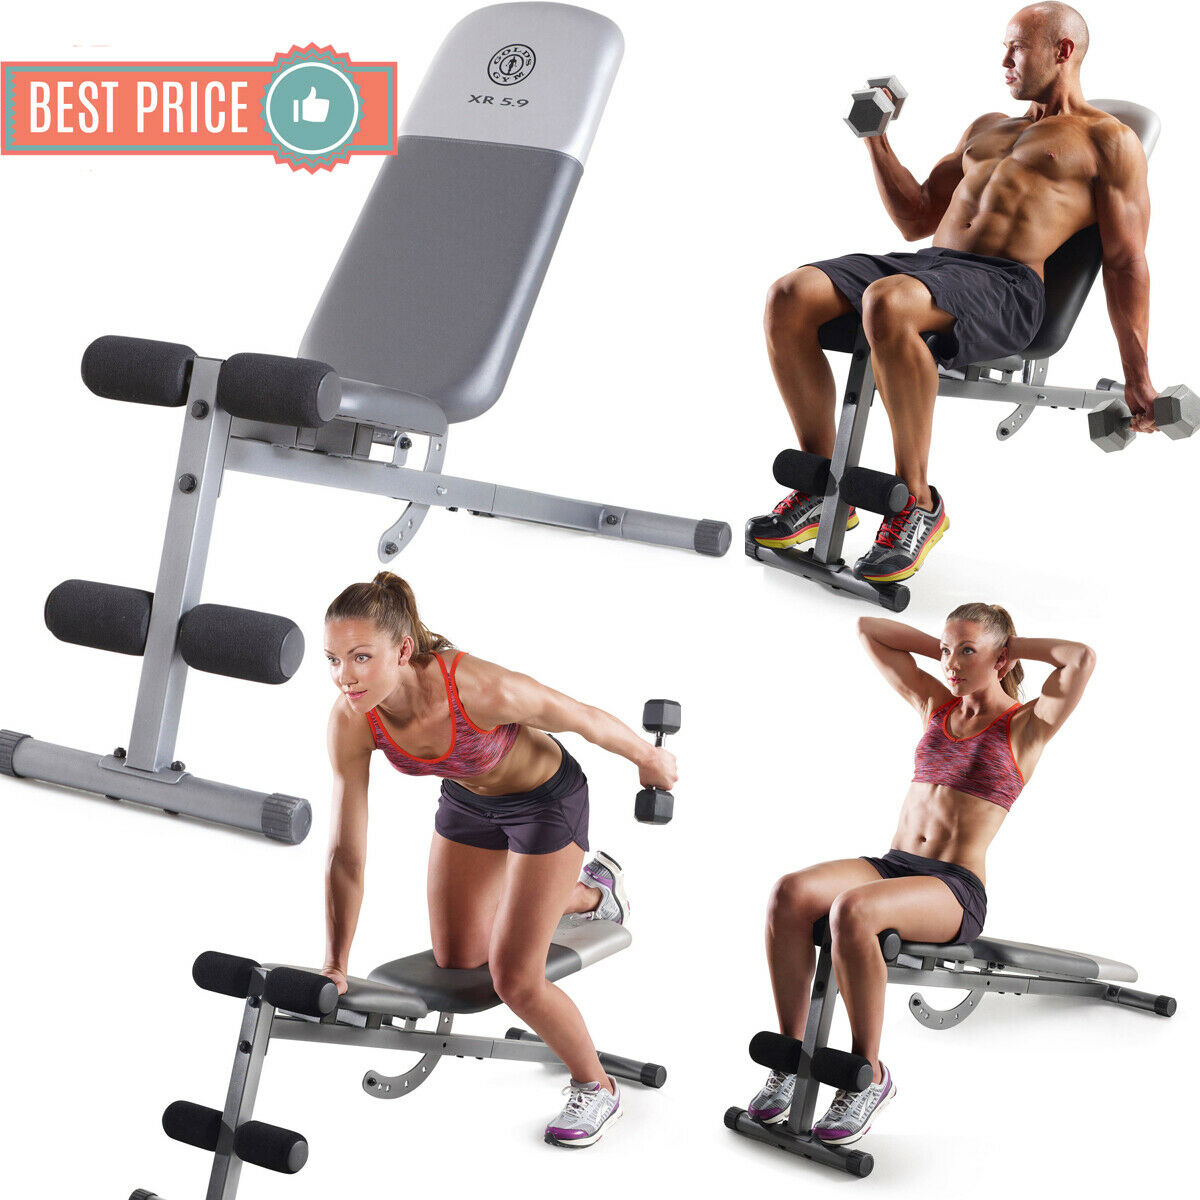 ADJUSTABLE WEIGHT BENCH Flat Incline Decline Full Body home Workout Exercise